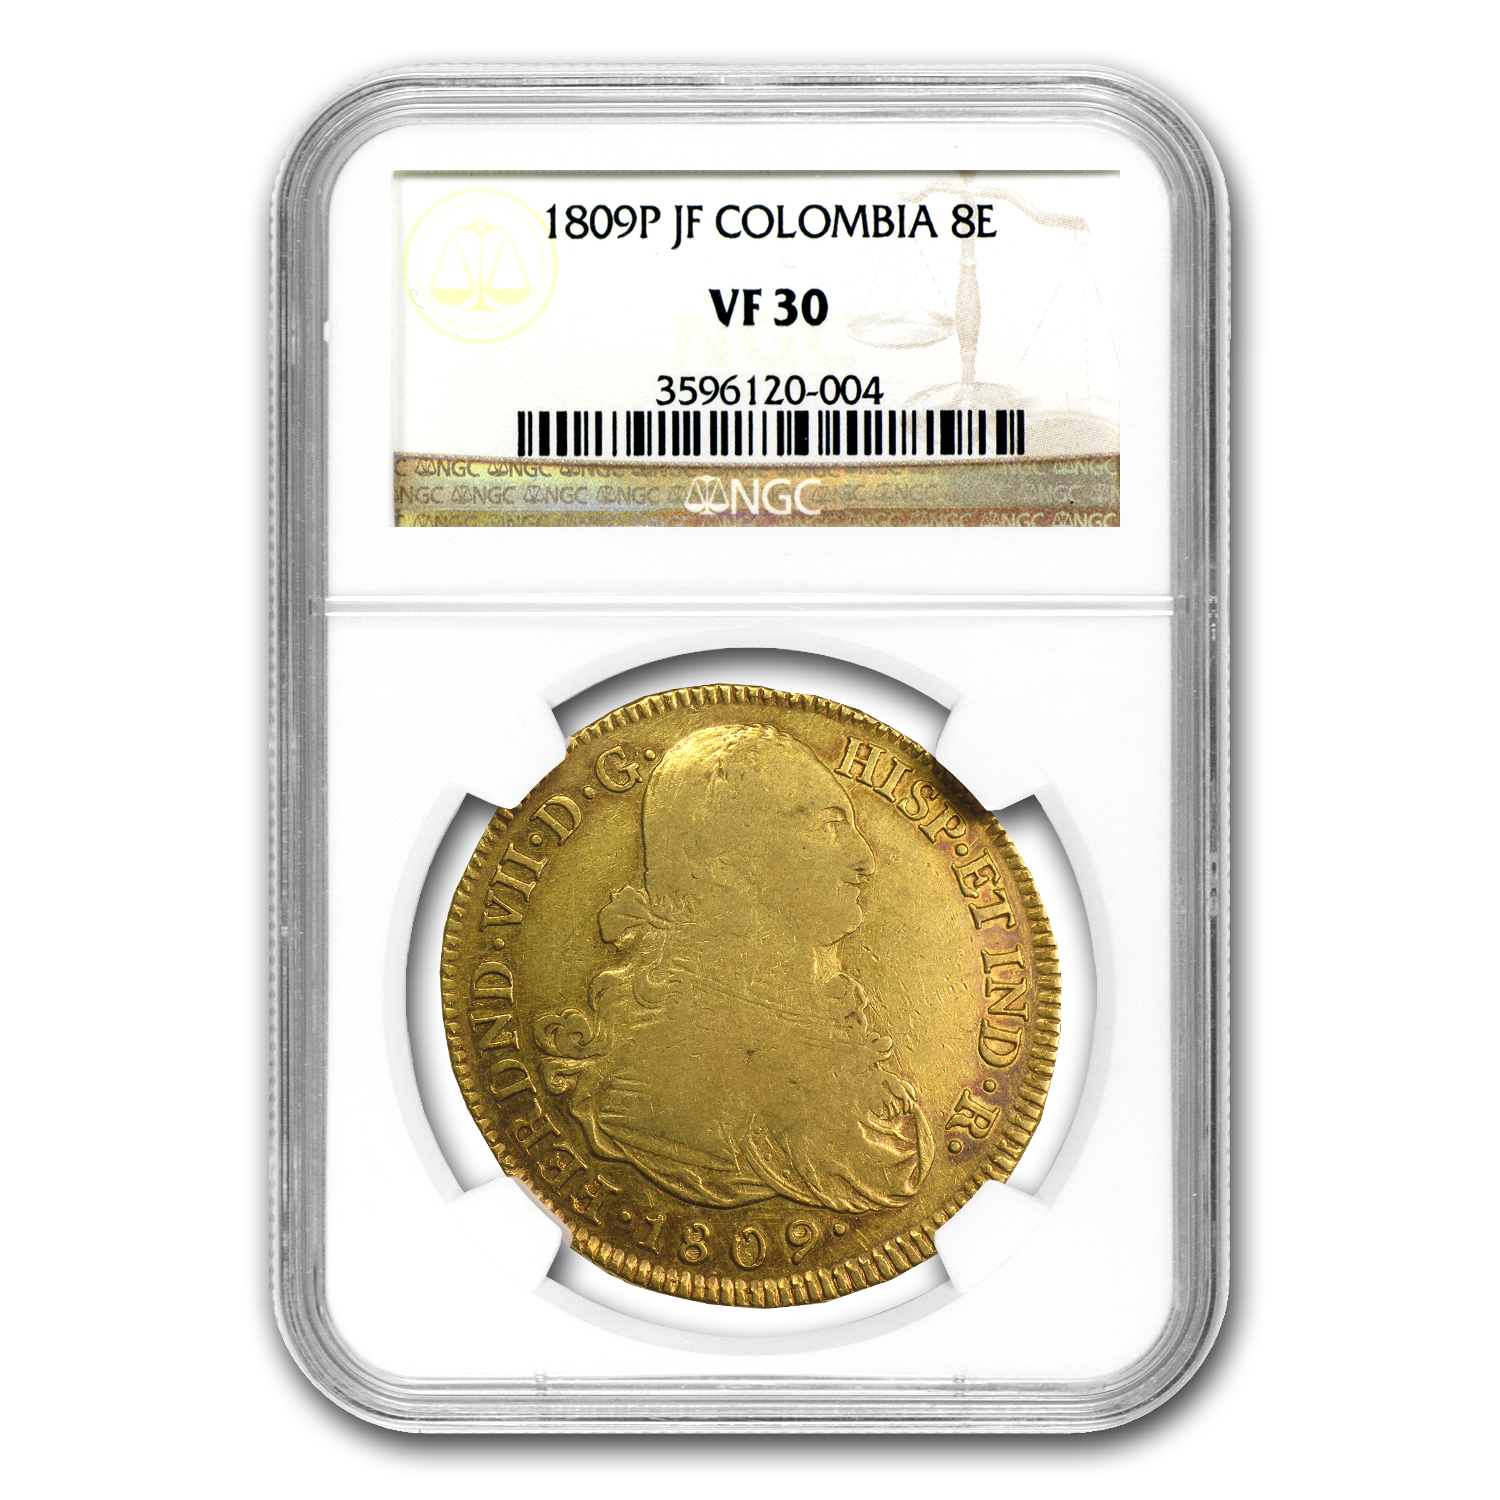 1809 P-JF Colombia Gold 8 Escudo Ferdinand VII VF-30 NGC